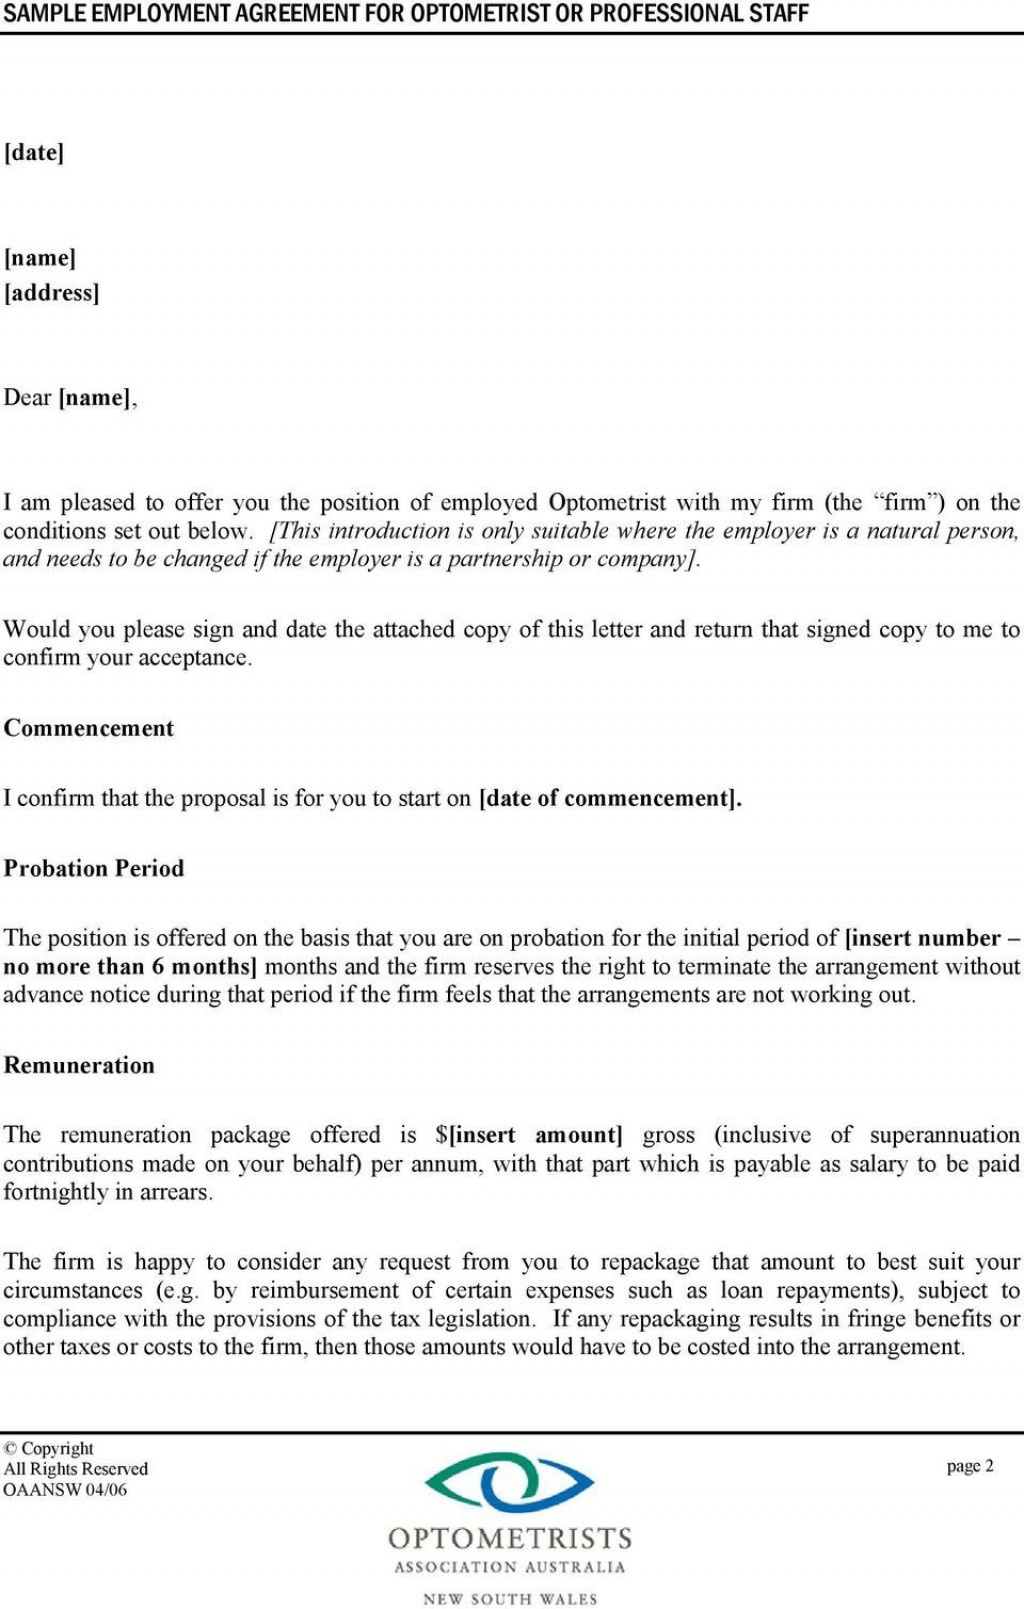 006 Fantastic Free Casual Employment Contract Template Australia Picture Large